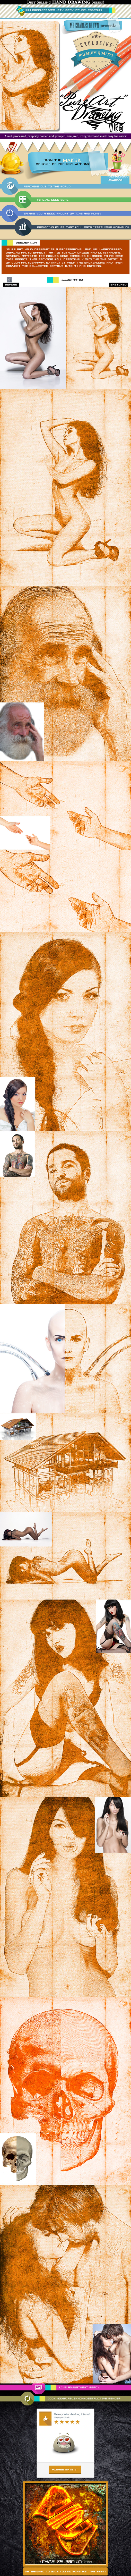 Pure Art Hand Drawing 65 – Prismacolor Pencil - Photo Effects Actions